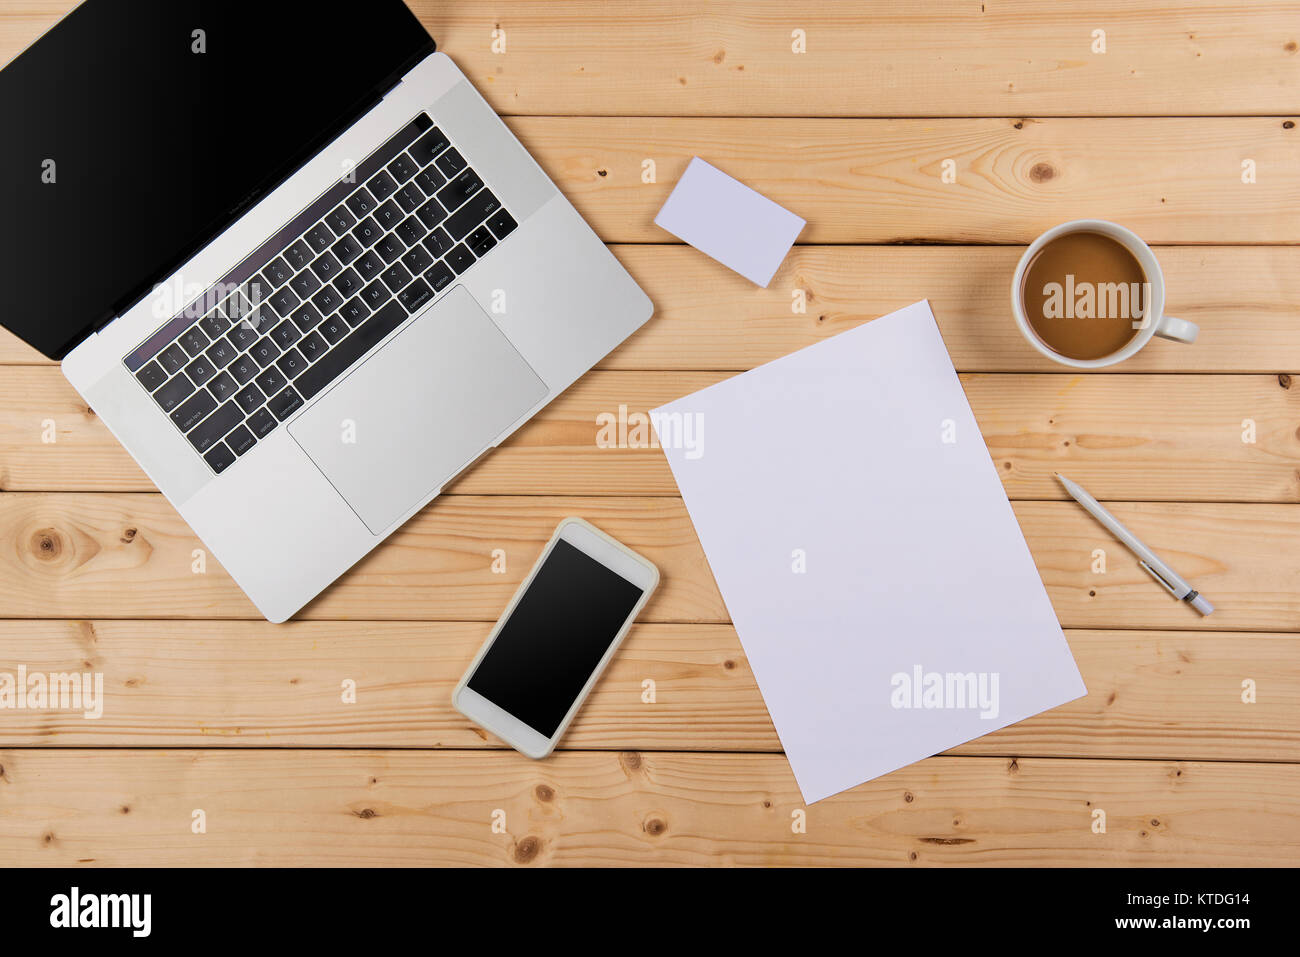 Working place wooden table top view office corporate design mockup working place wooden table top view office corporate design mockup template maxwellsz